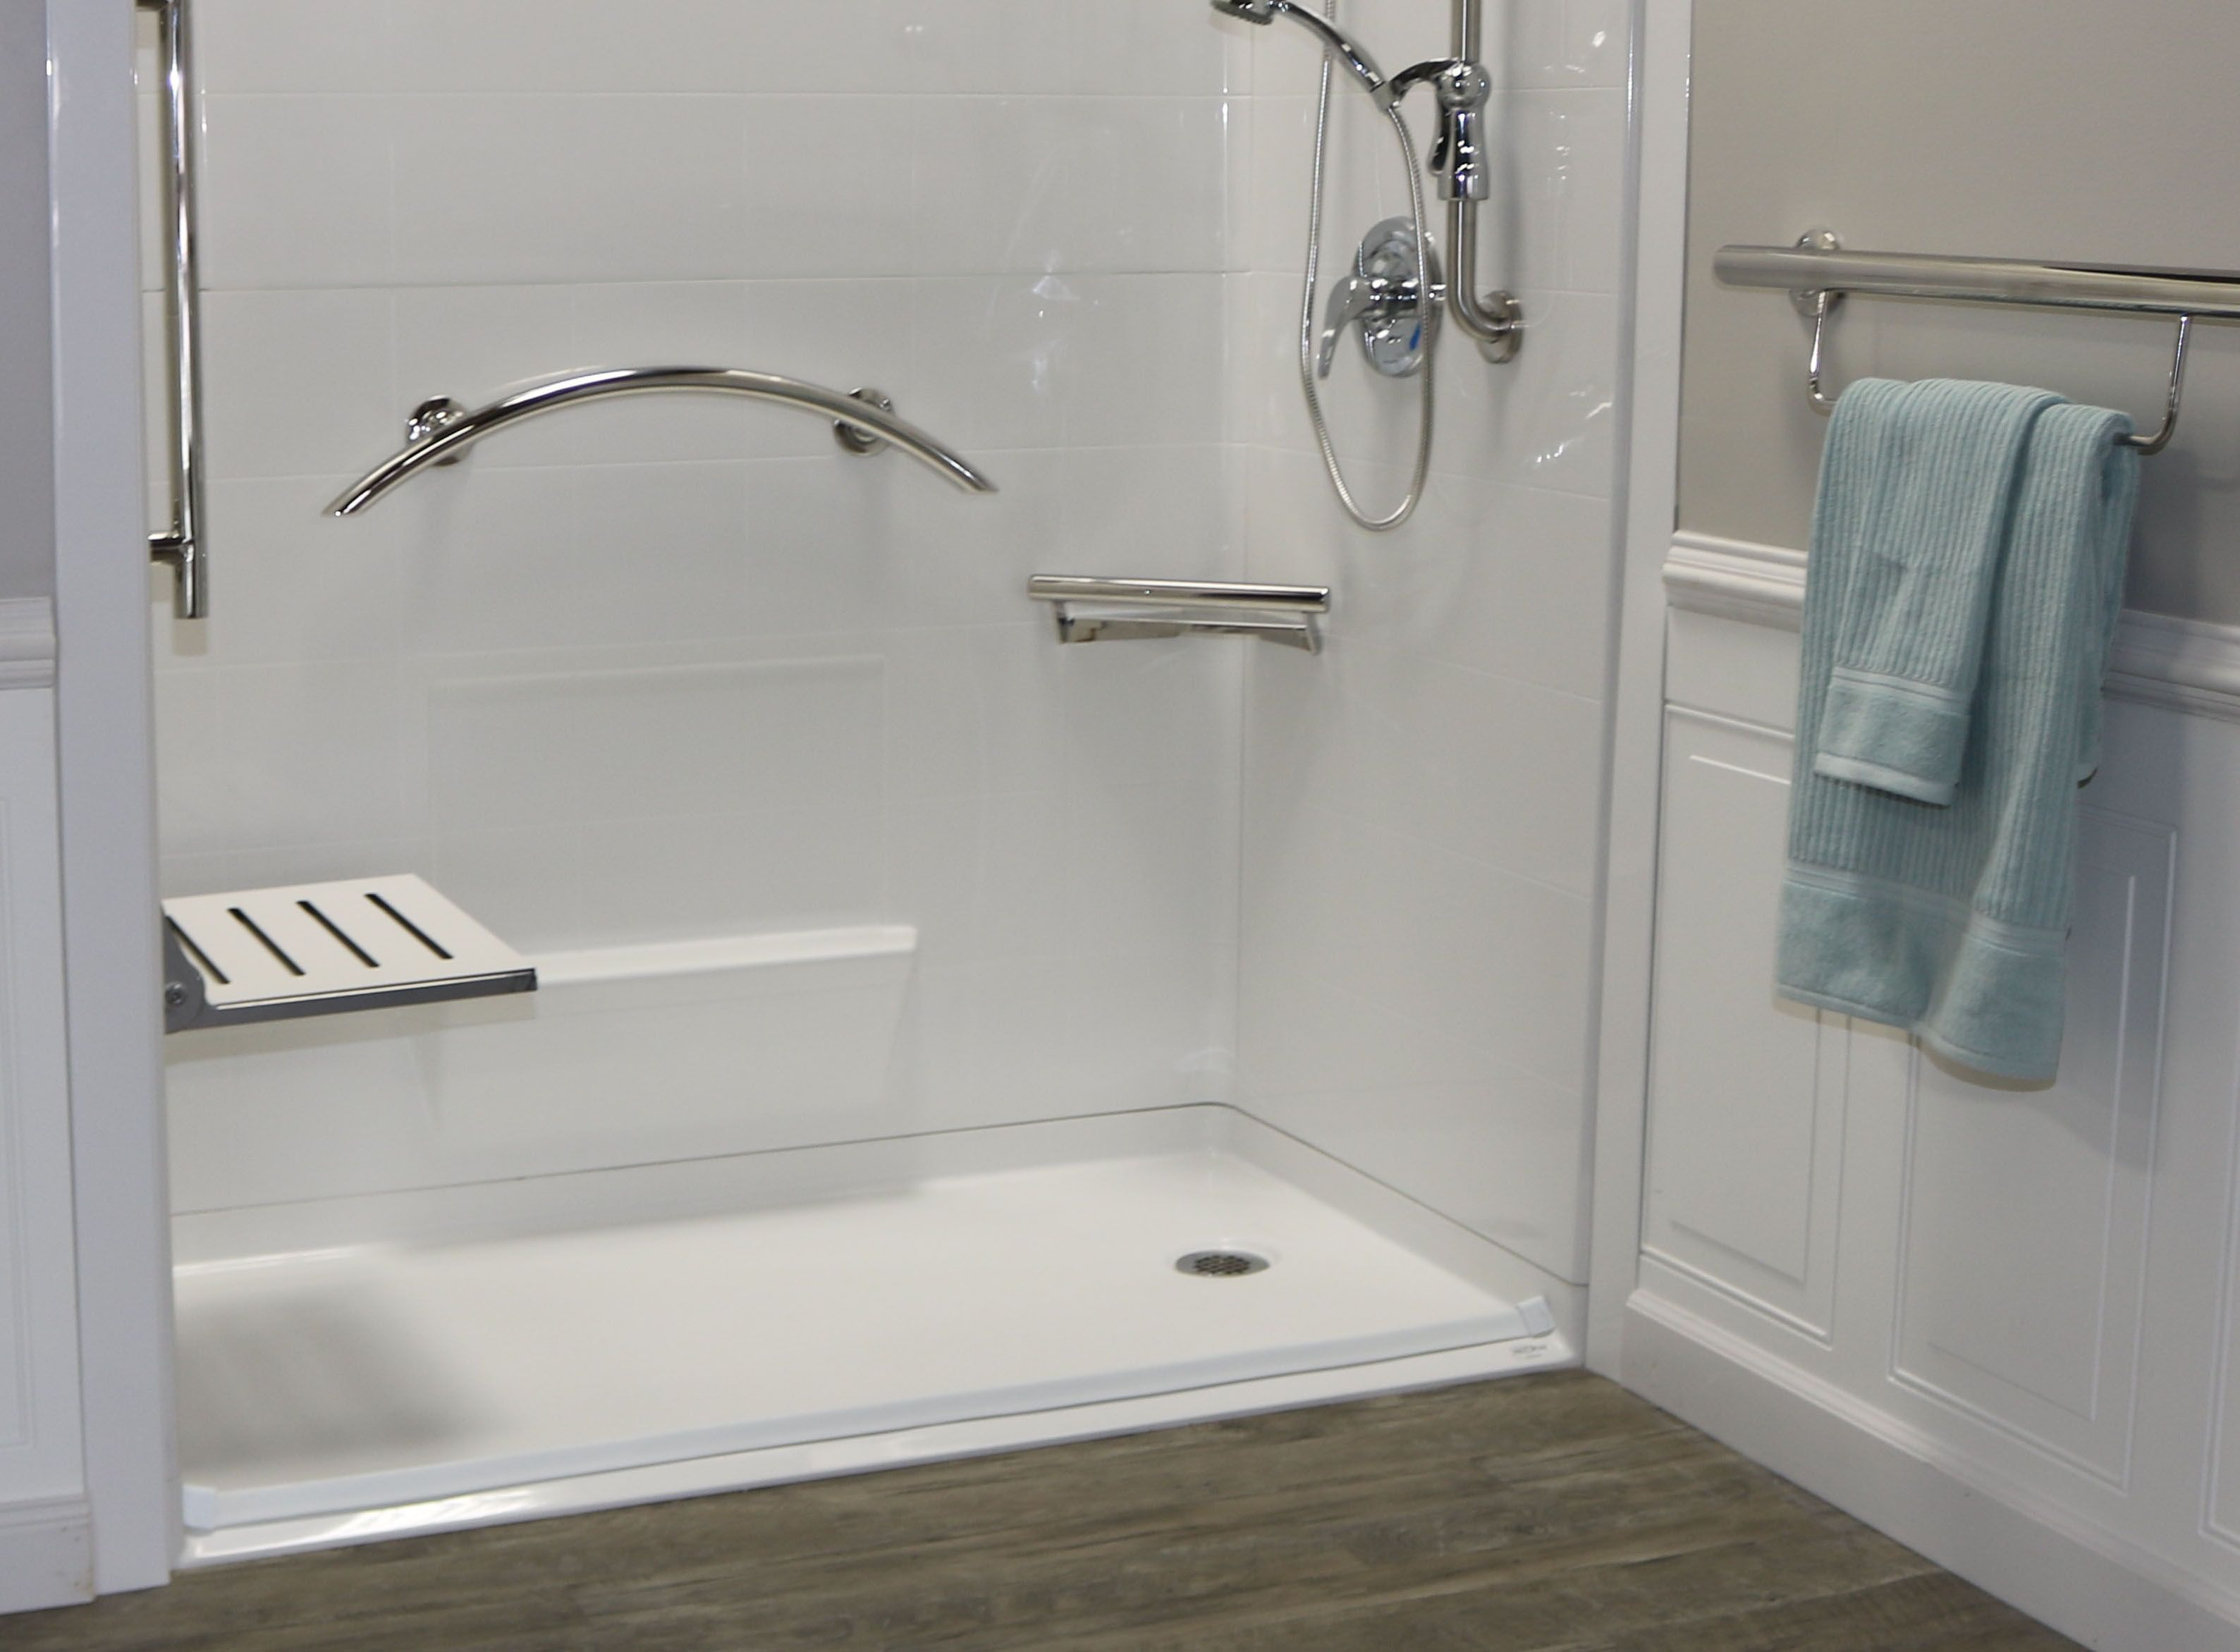 Handicap Shower Water Barrier : Accessorize your freedom barrier free shower with stylish